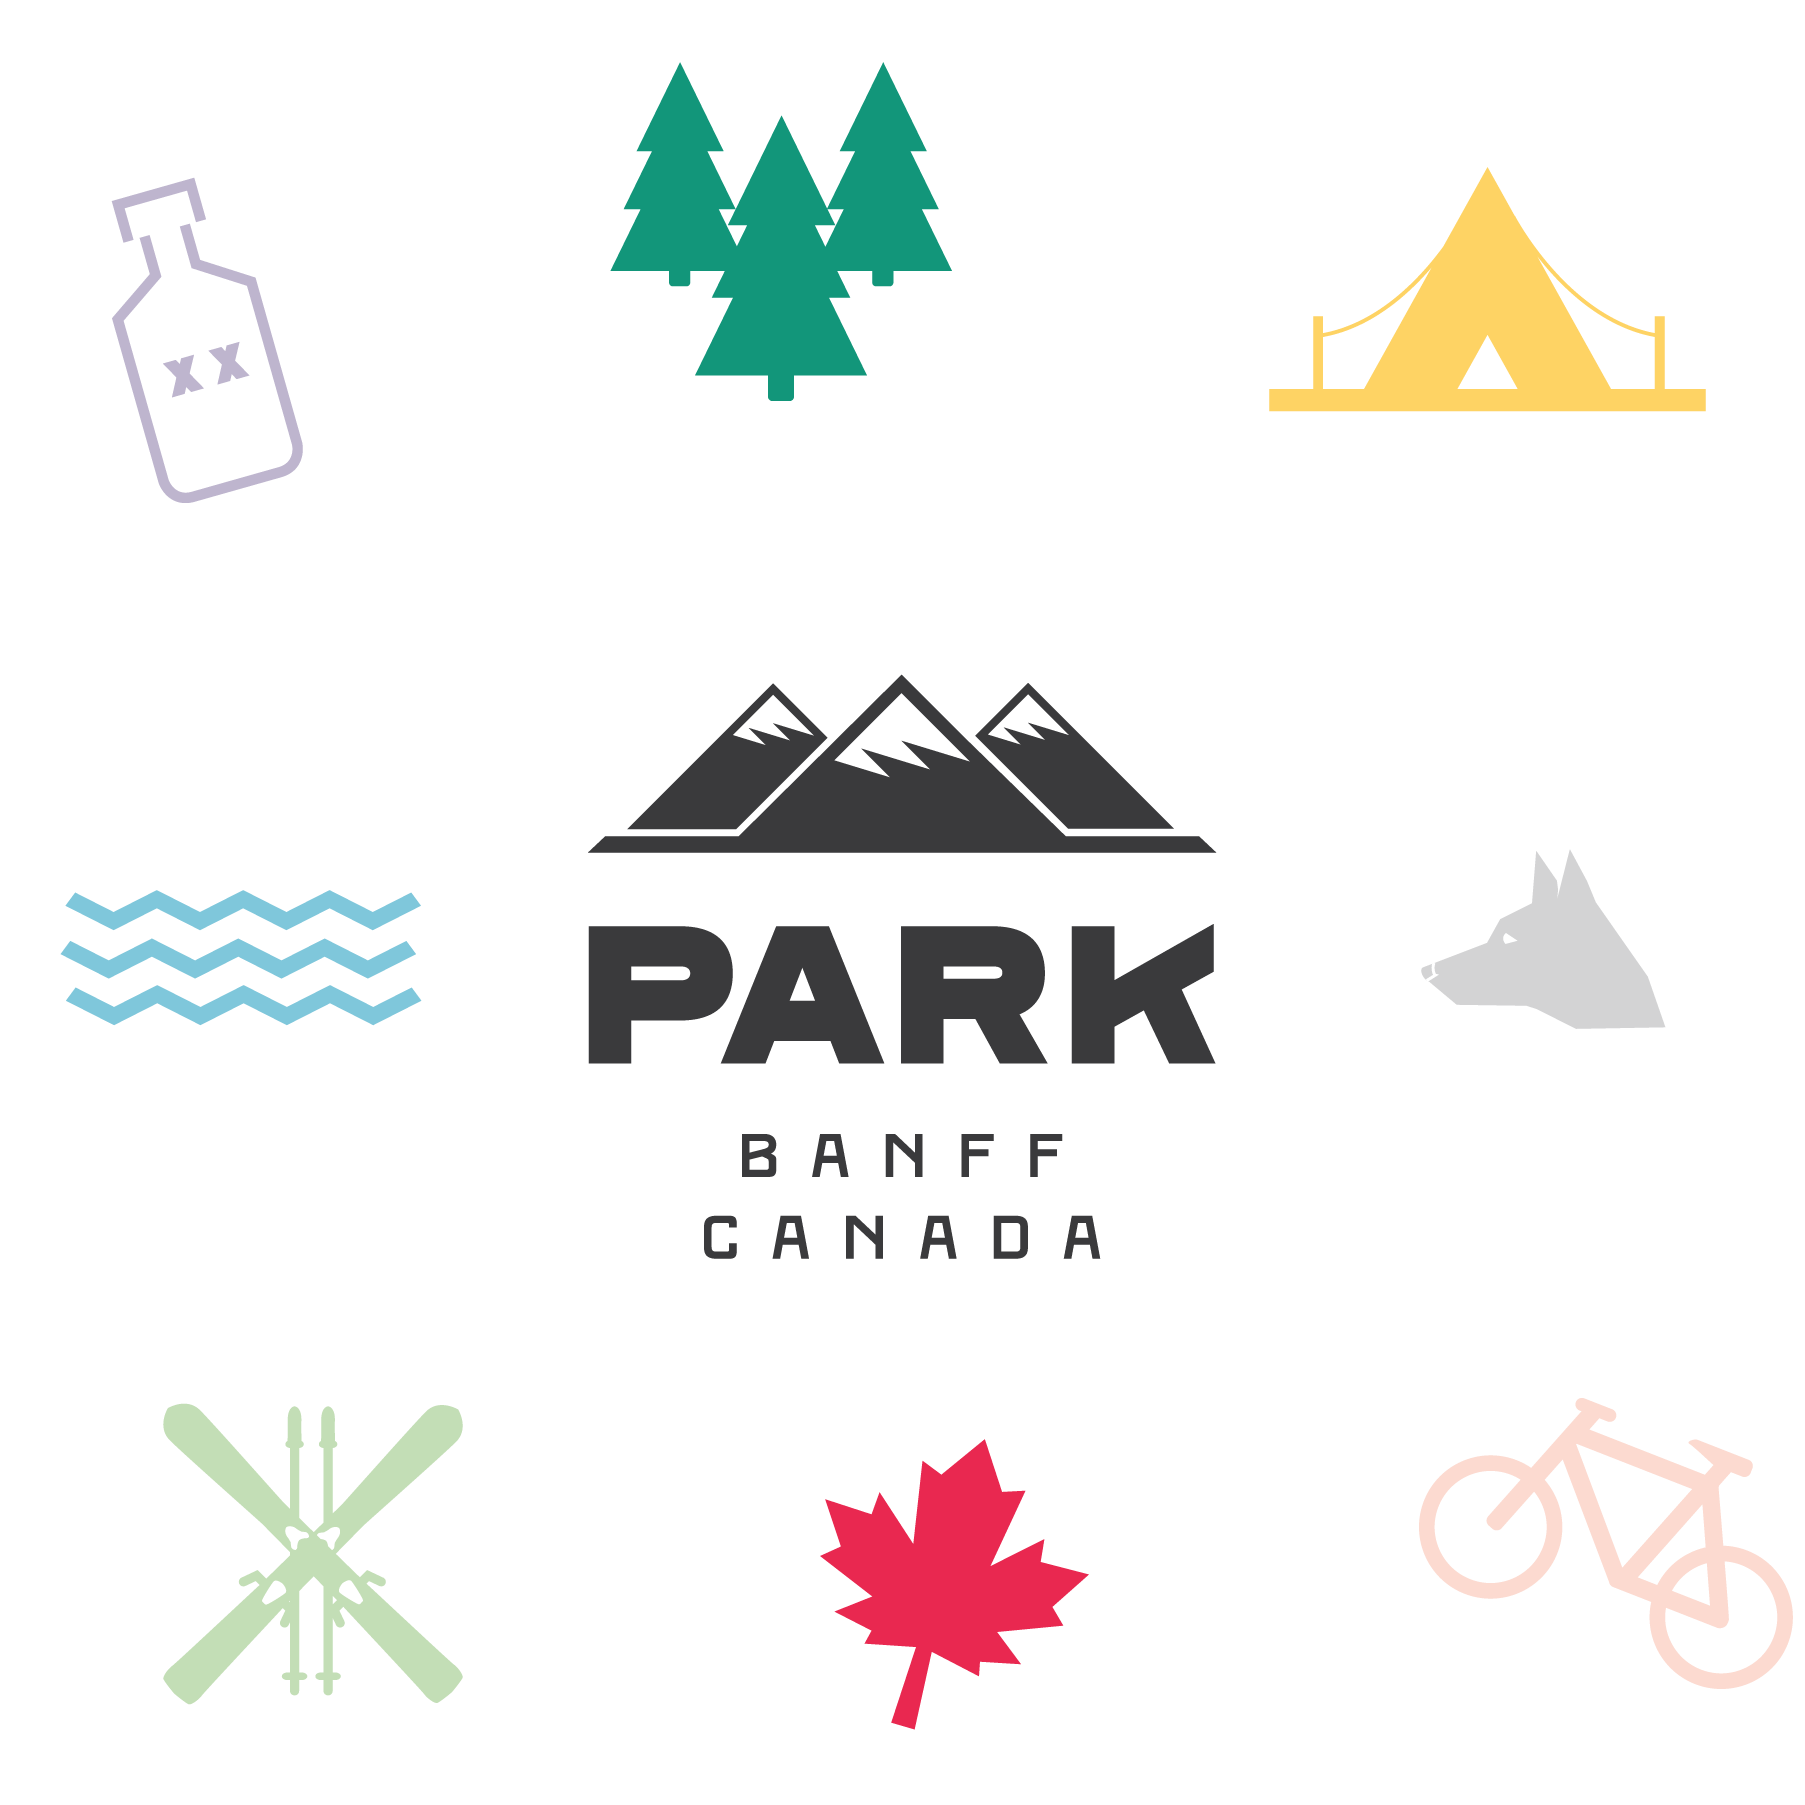 park icons events web animation 9.png